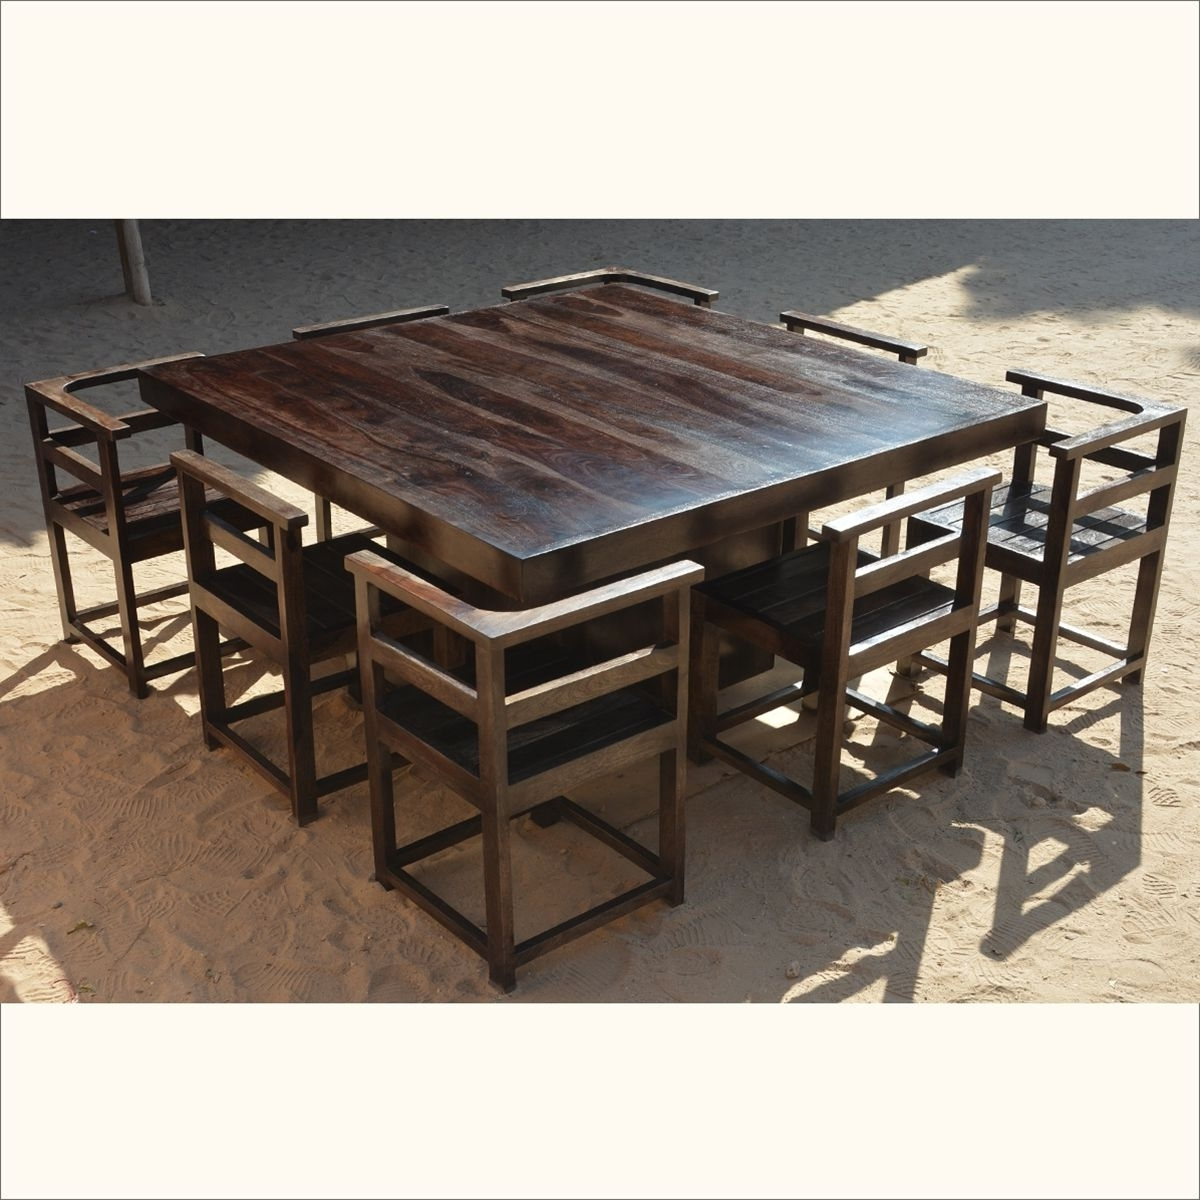 "Square Dining Tables With Popular Modern Rustic Solid Wood 64"" Square Pedestal Dining Table & 8 Chairs (View 6 of 25)"